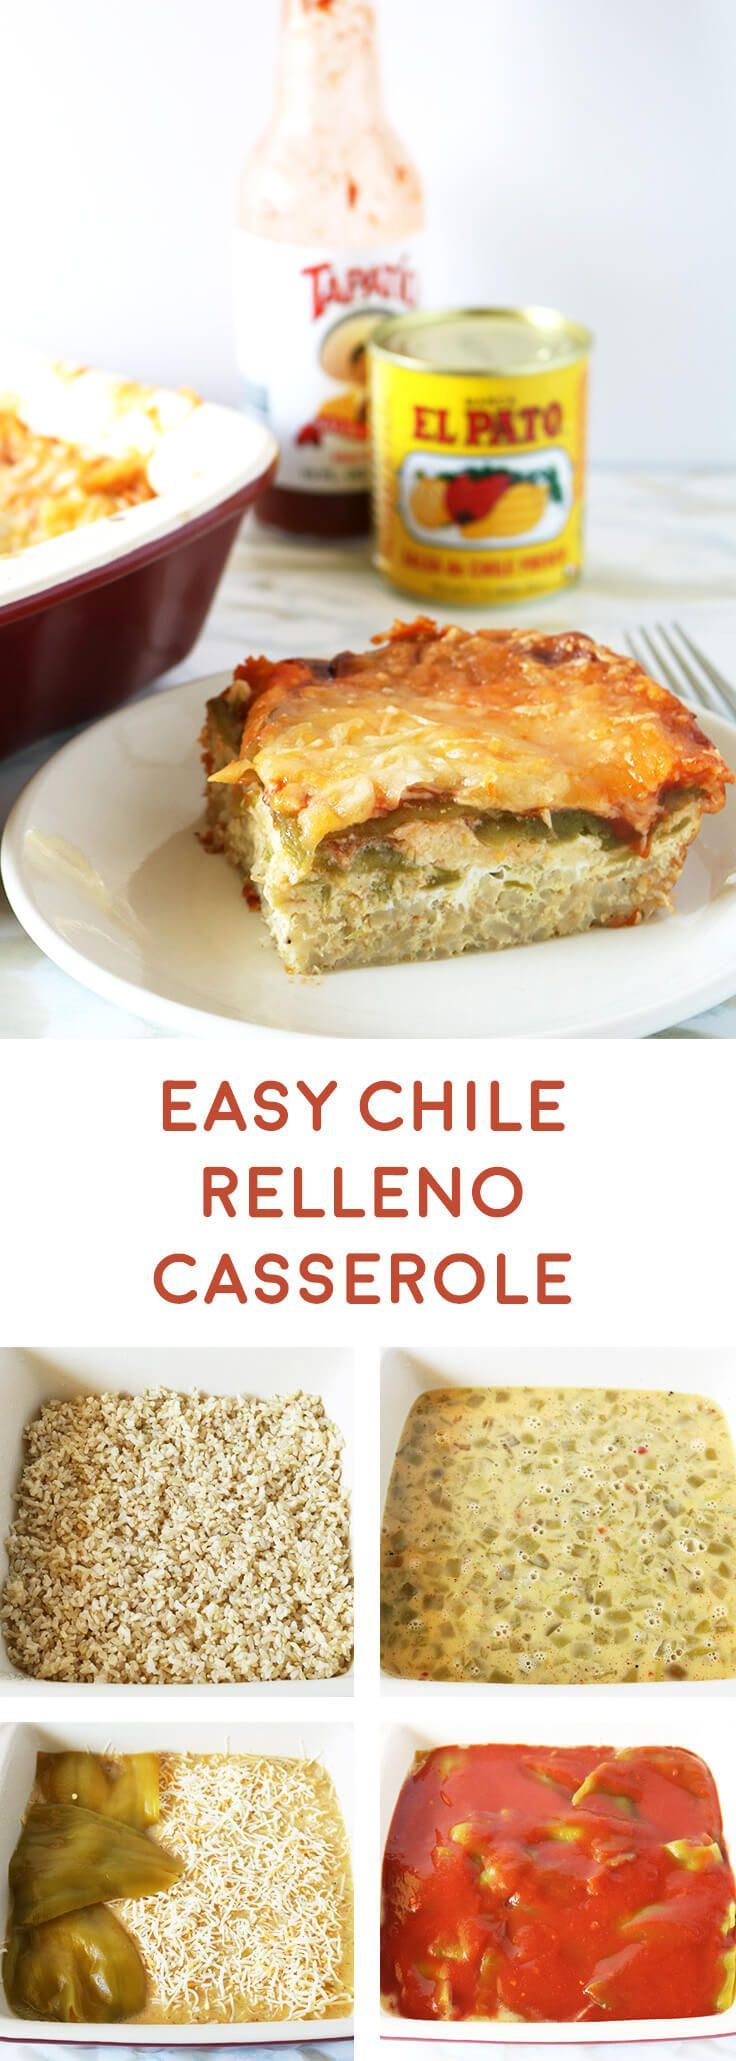 El Pato is my favorite salsa, enchilada sauce and I use the cans as planters. Easy Chile Relleno Casserole